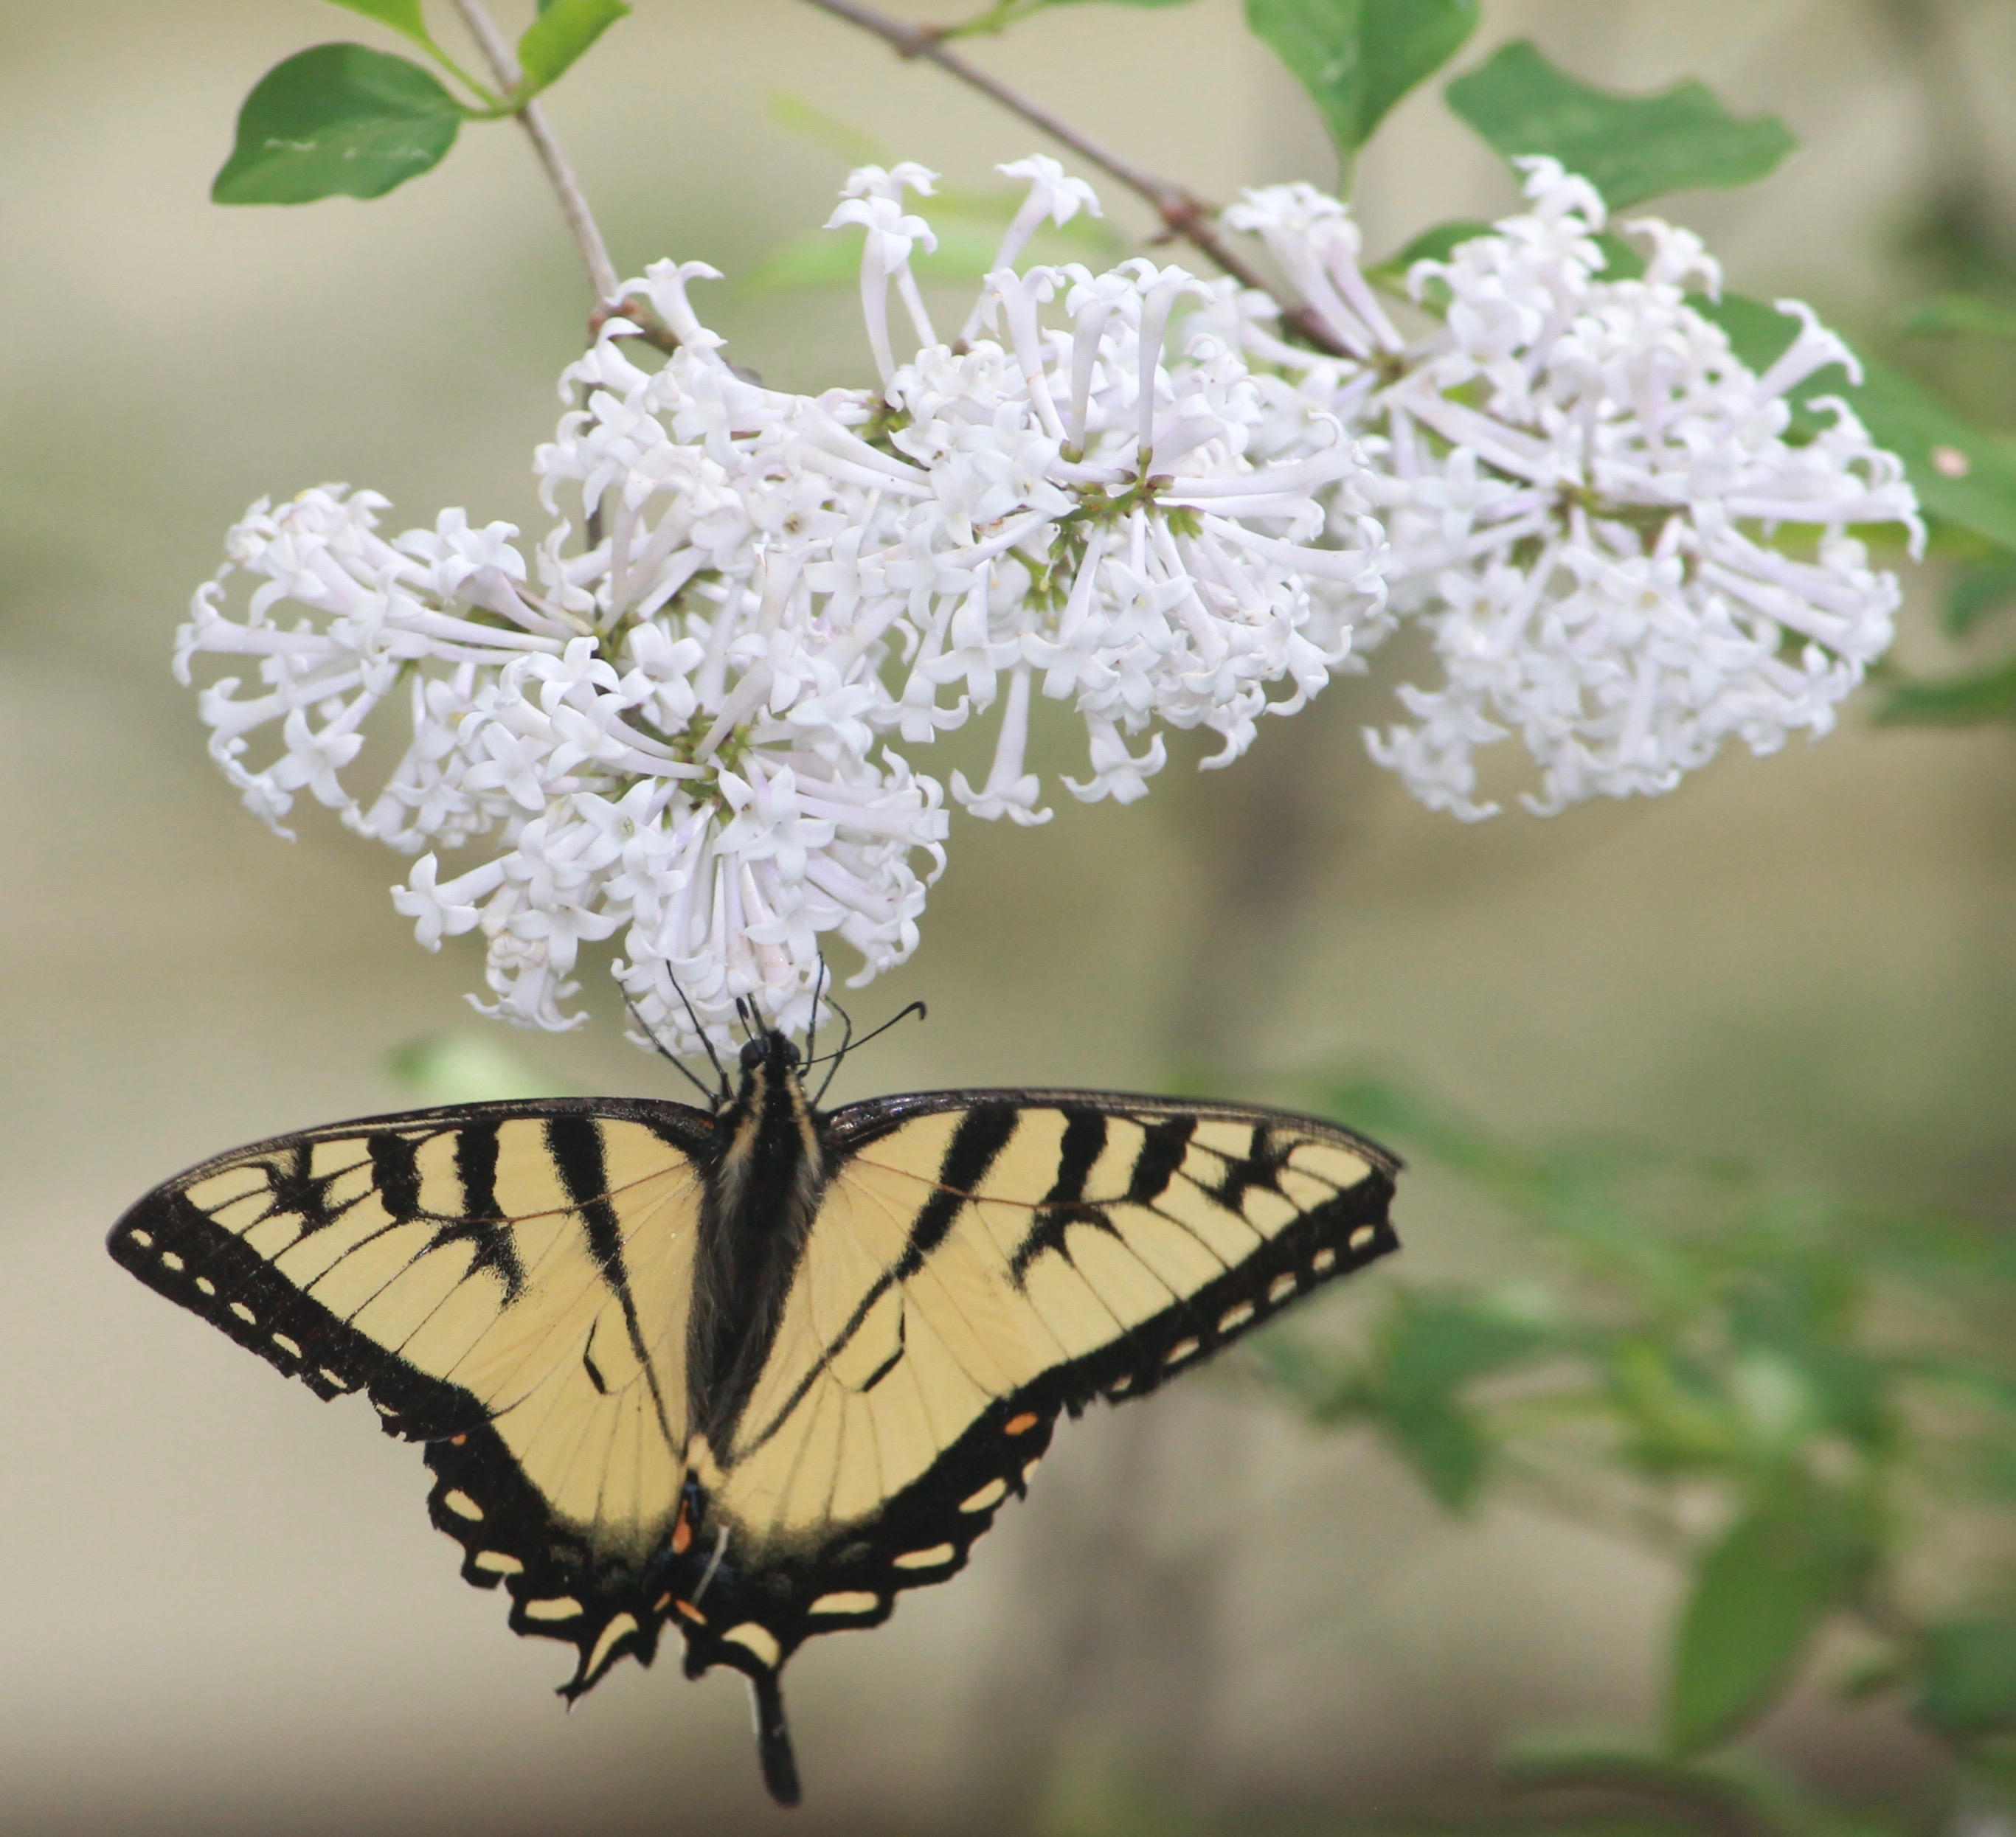 swallowtail butterfly on white lilac